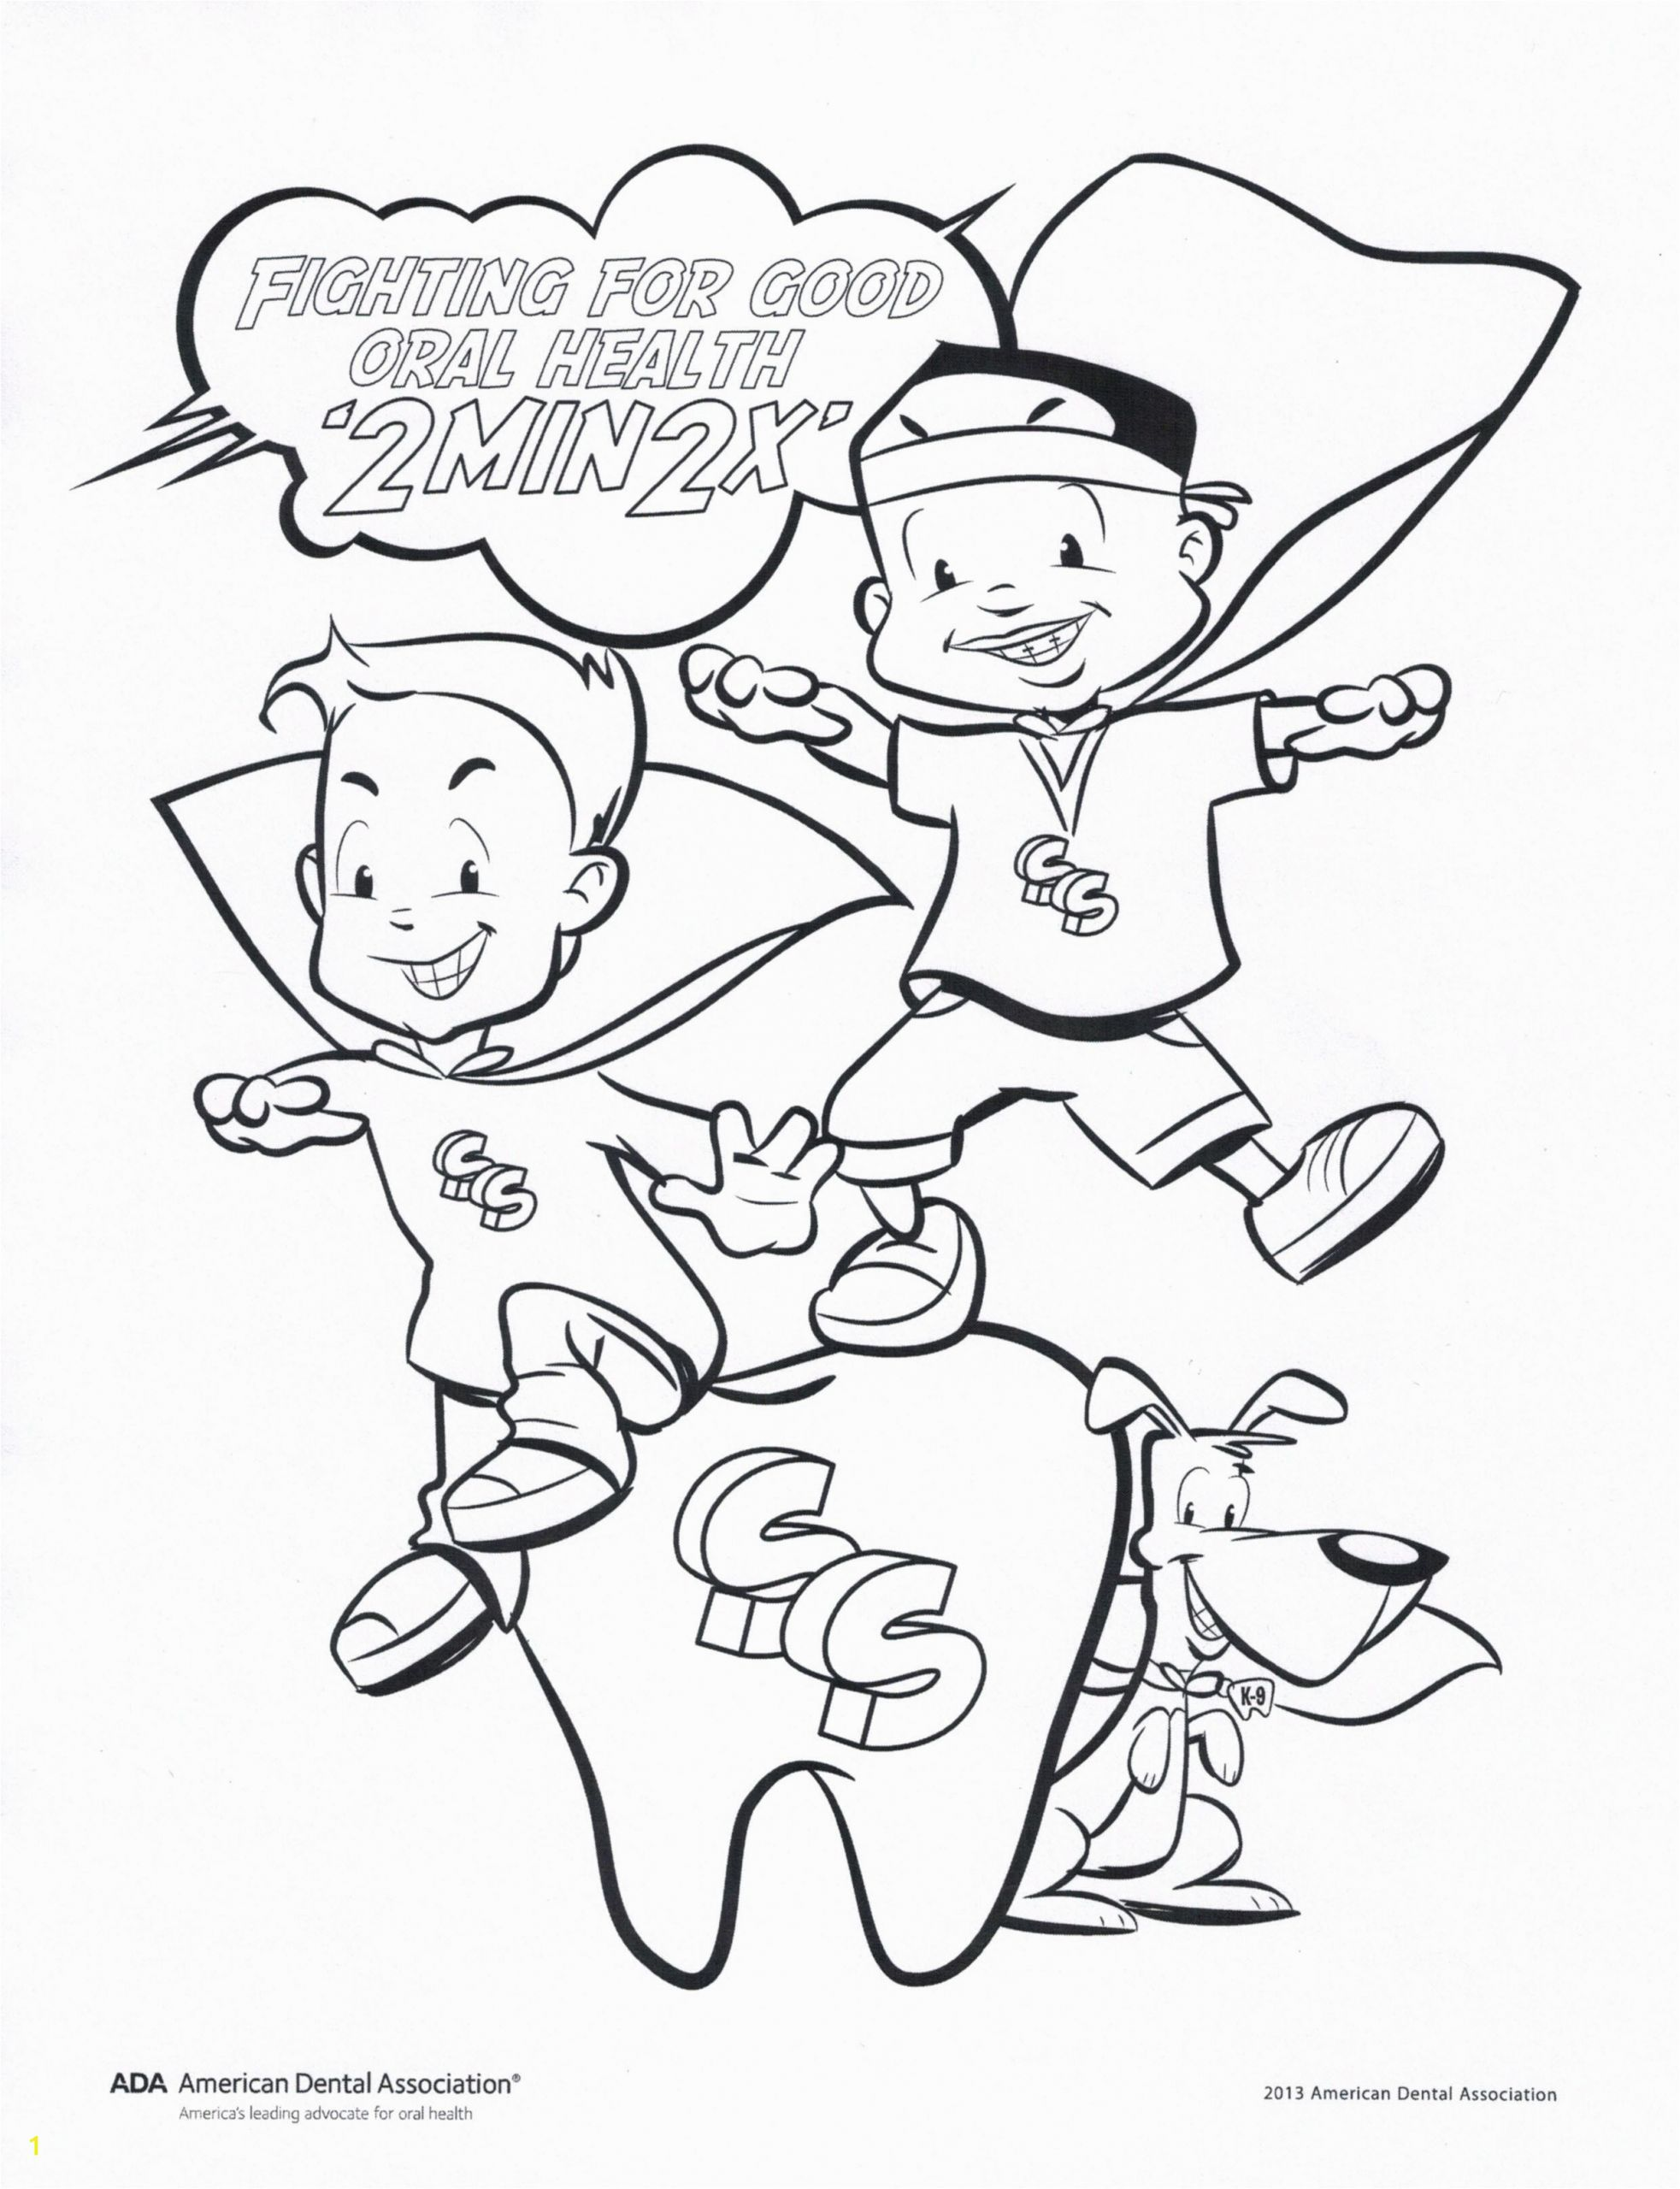 Oral Health Coloring Pages Fight for Good oral Health Coloring Page